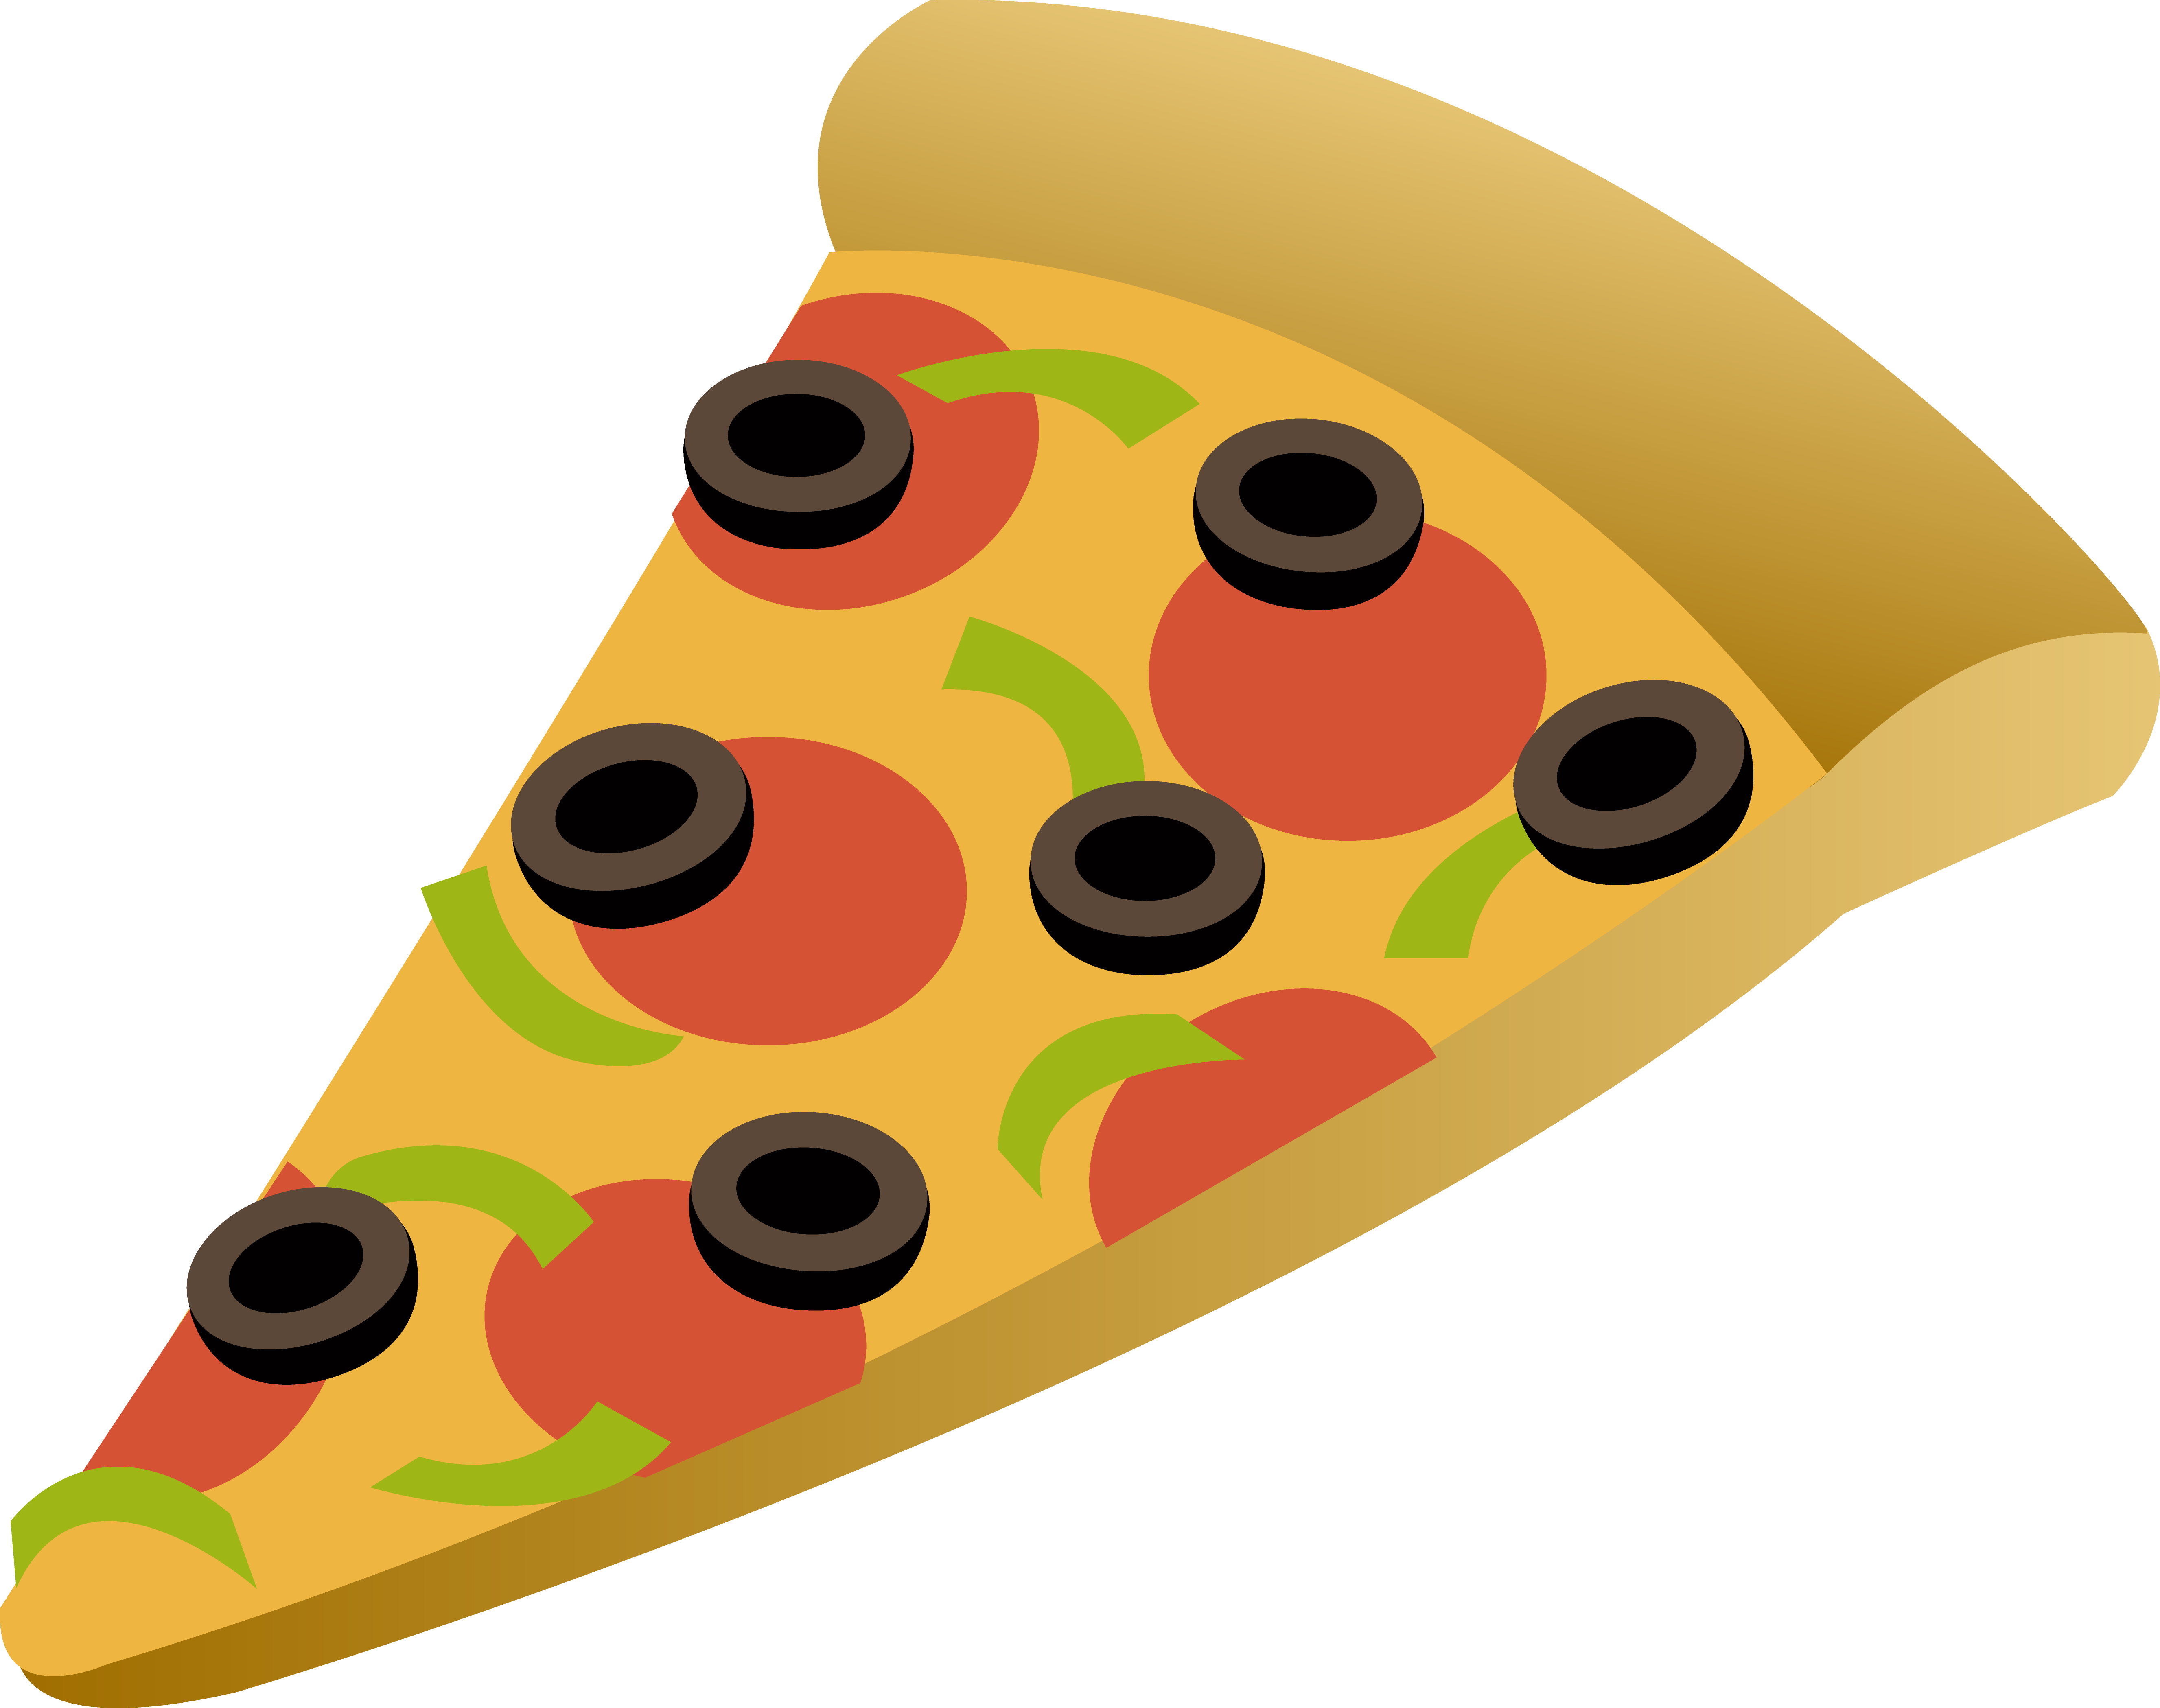 Free PNG Pizza Slice - 76982